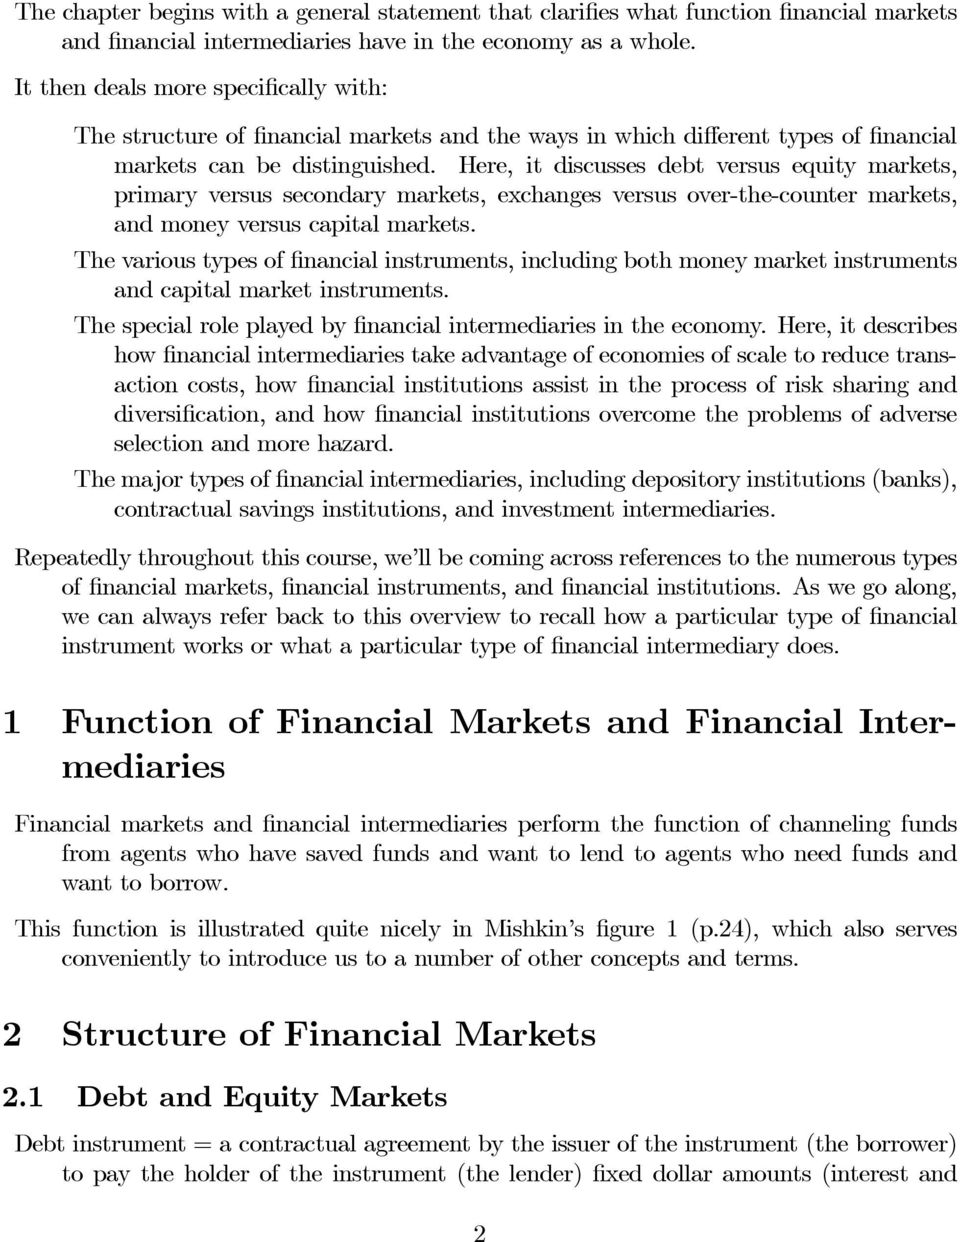 Here, it discusses debt versus equity markets, primary versus secondary markets, exchanges versus over-the-counter markets, and money versus capital markets.